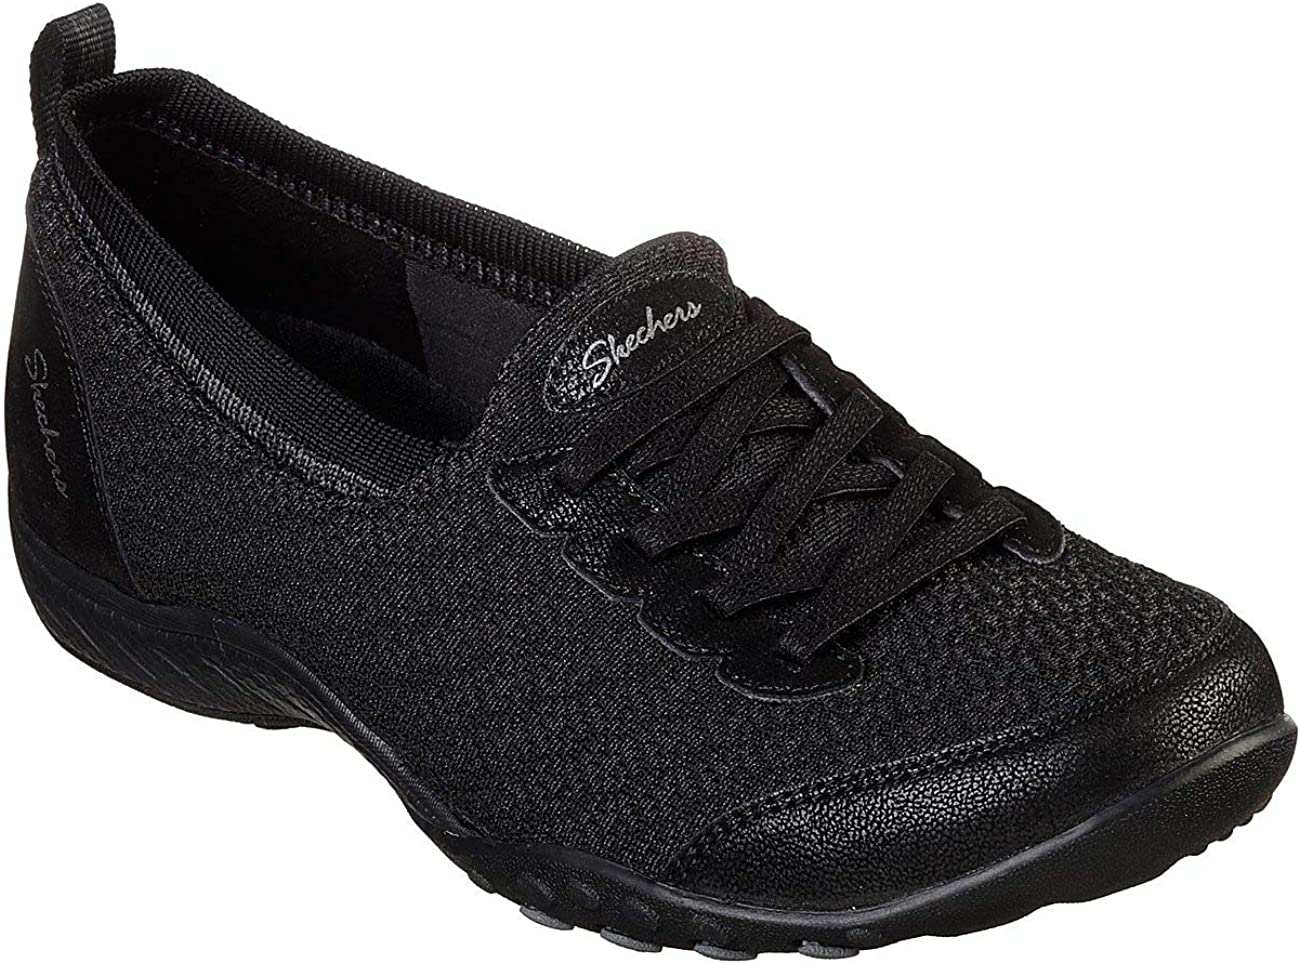 Skechers Relaxed Fit Breathe Easy I m Dreaming Womens Slip On Sneakers